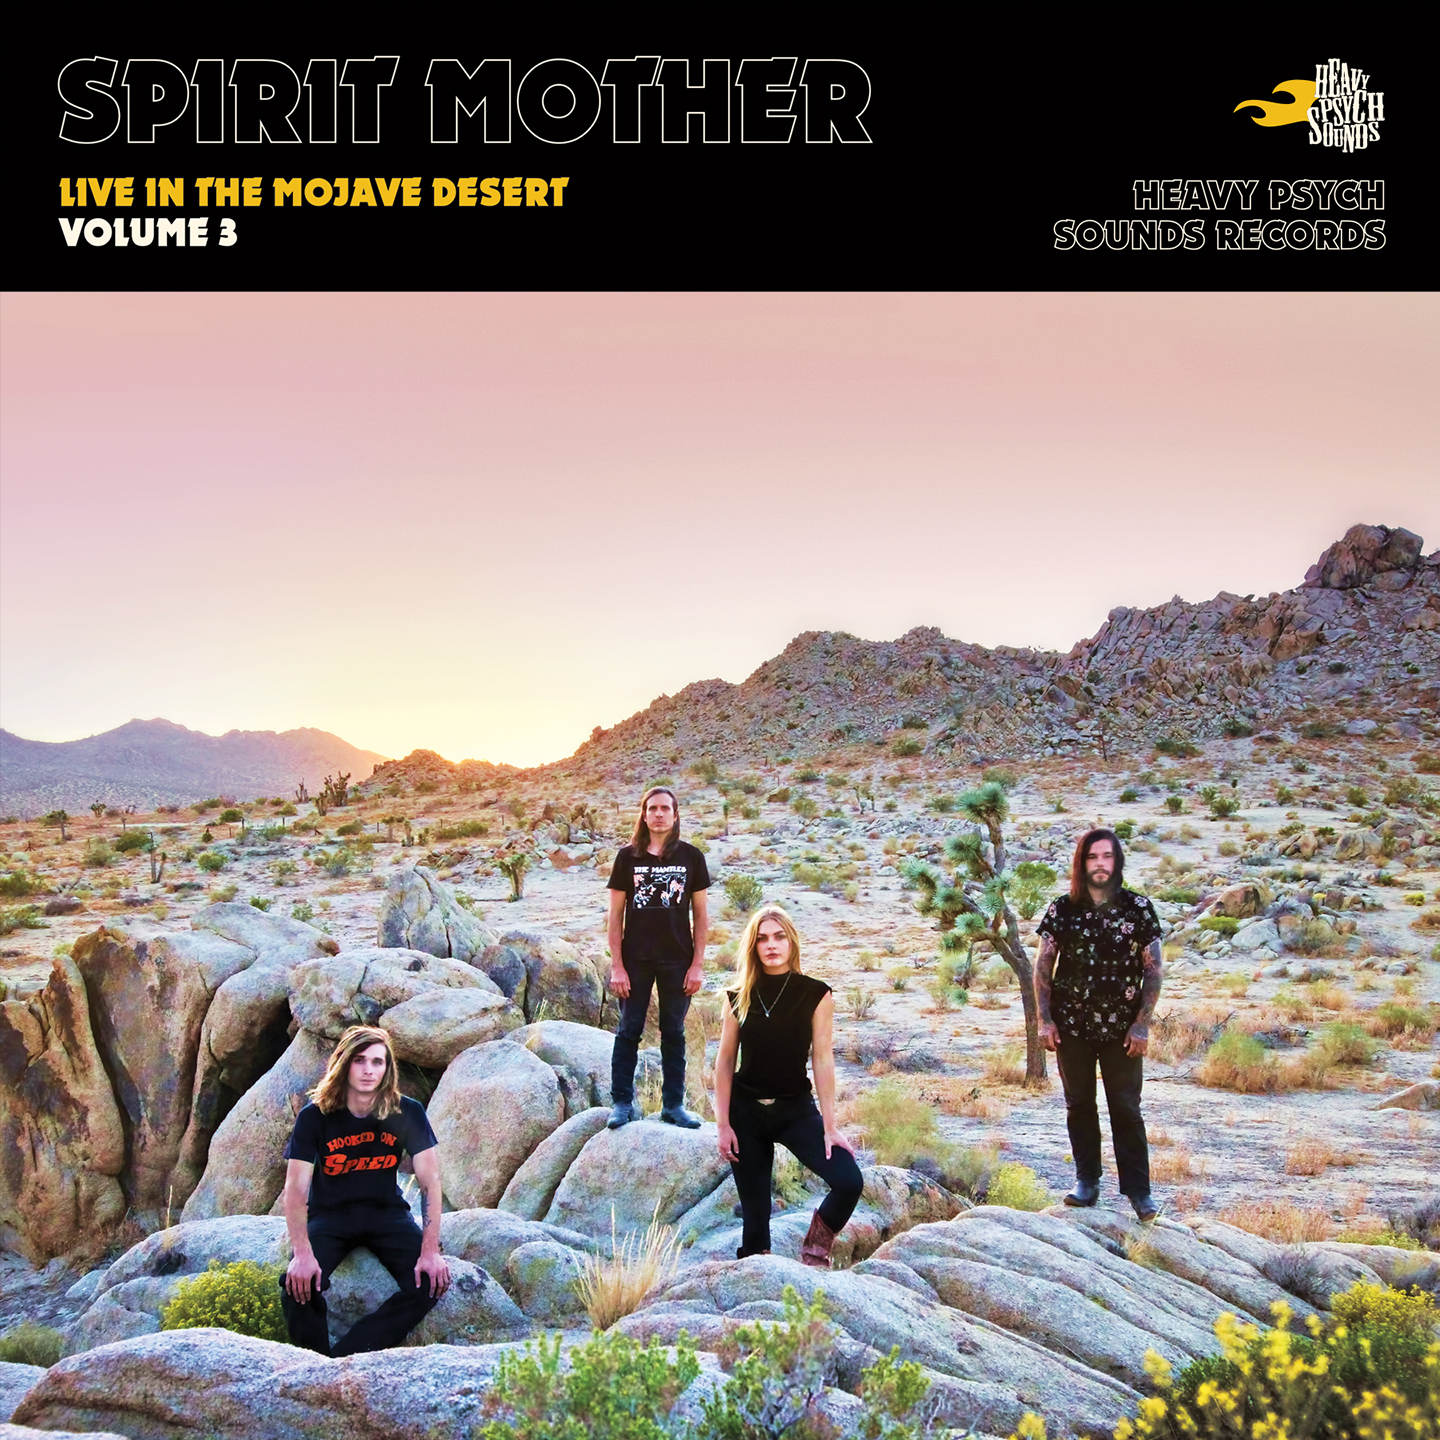 spirit mother live in the mojave desert